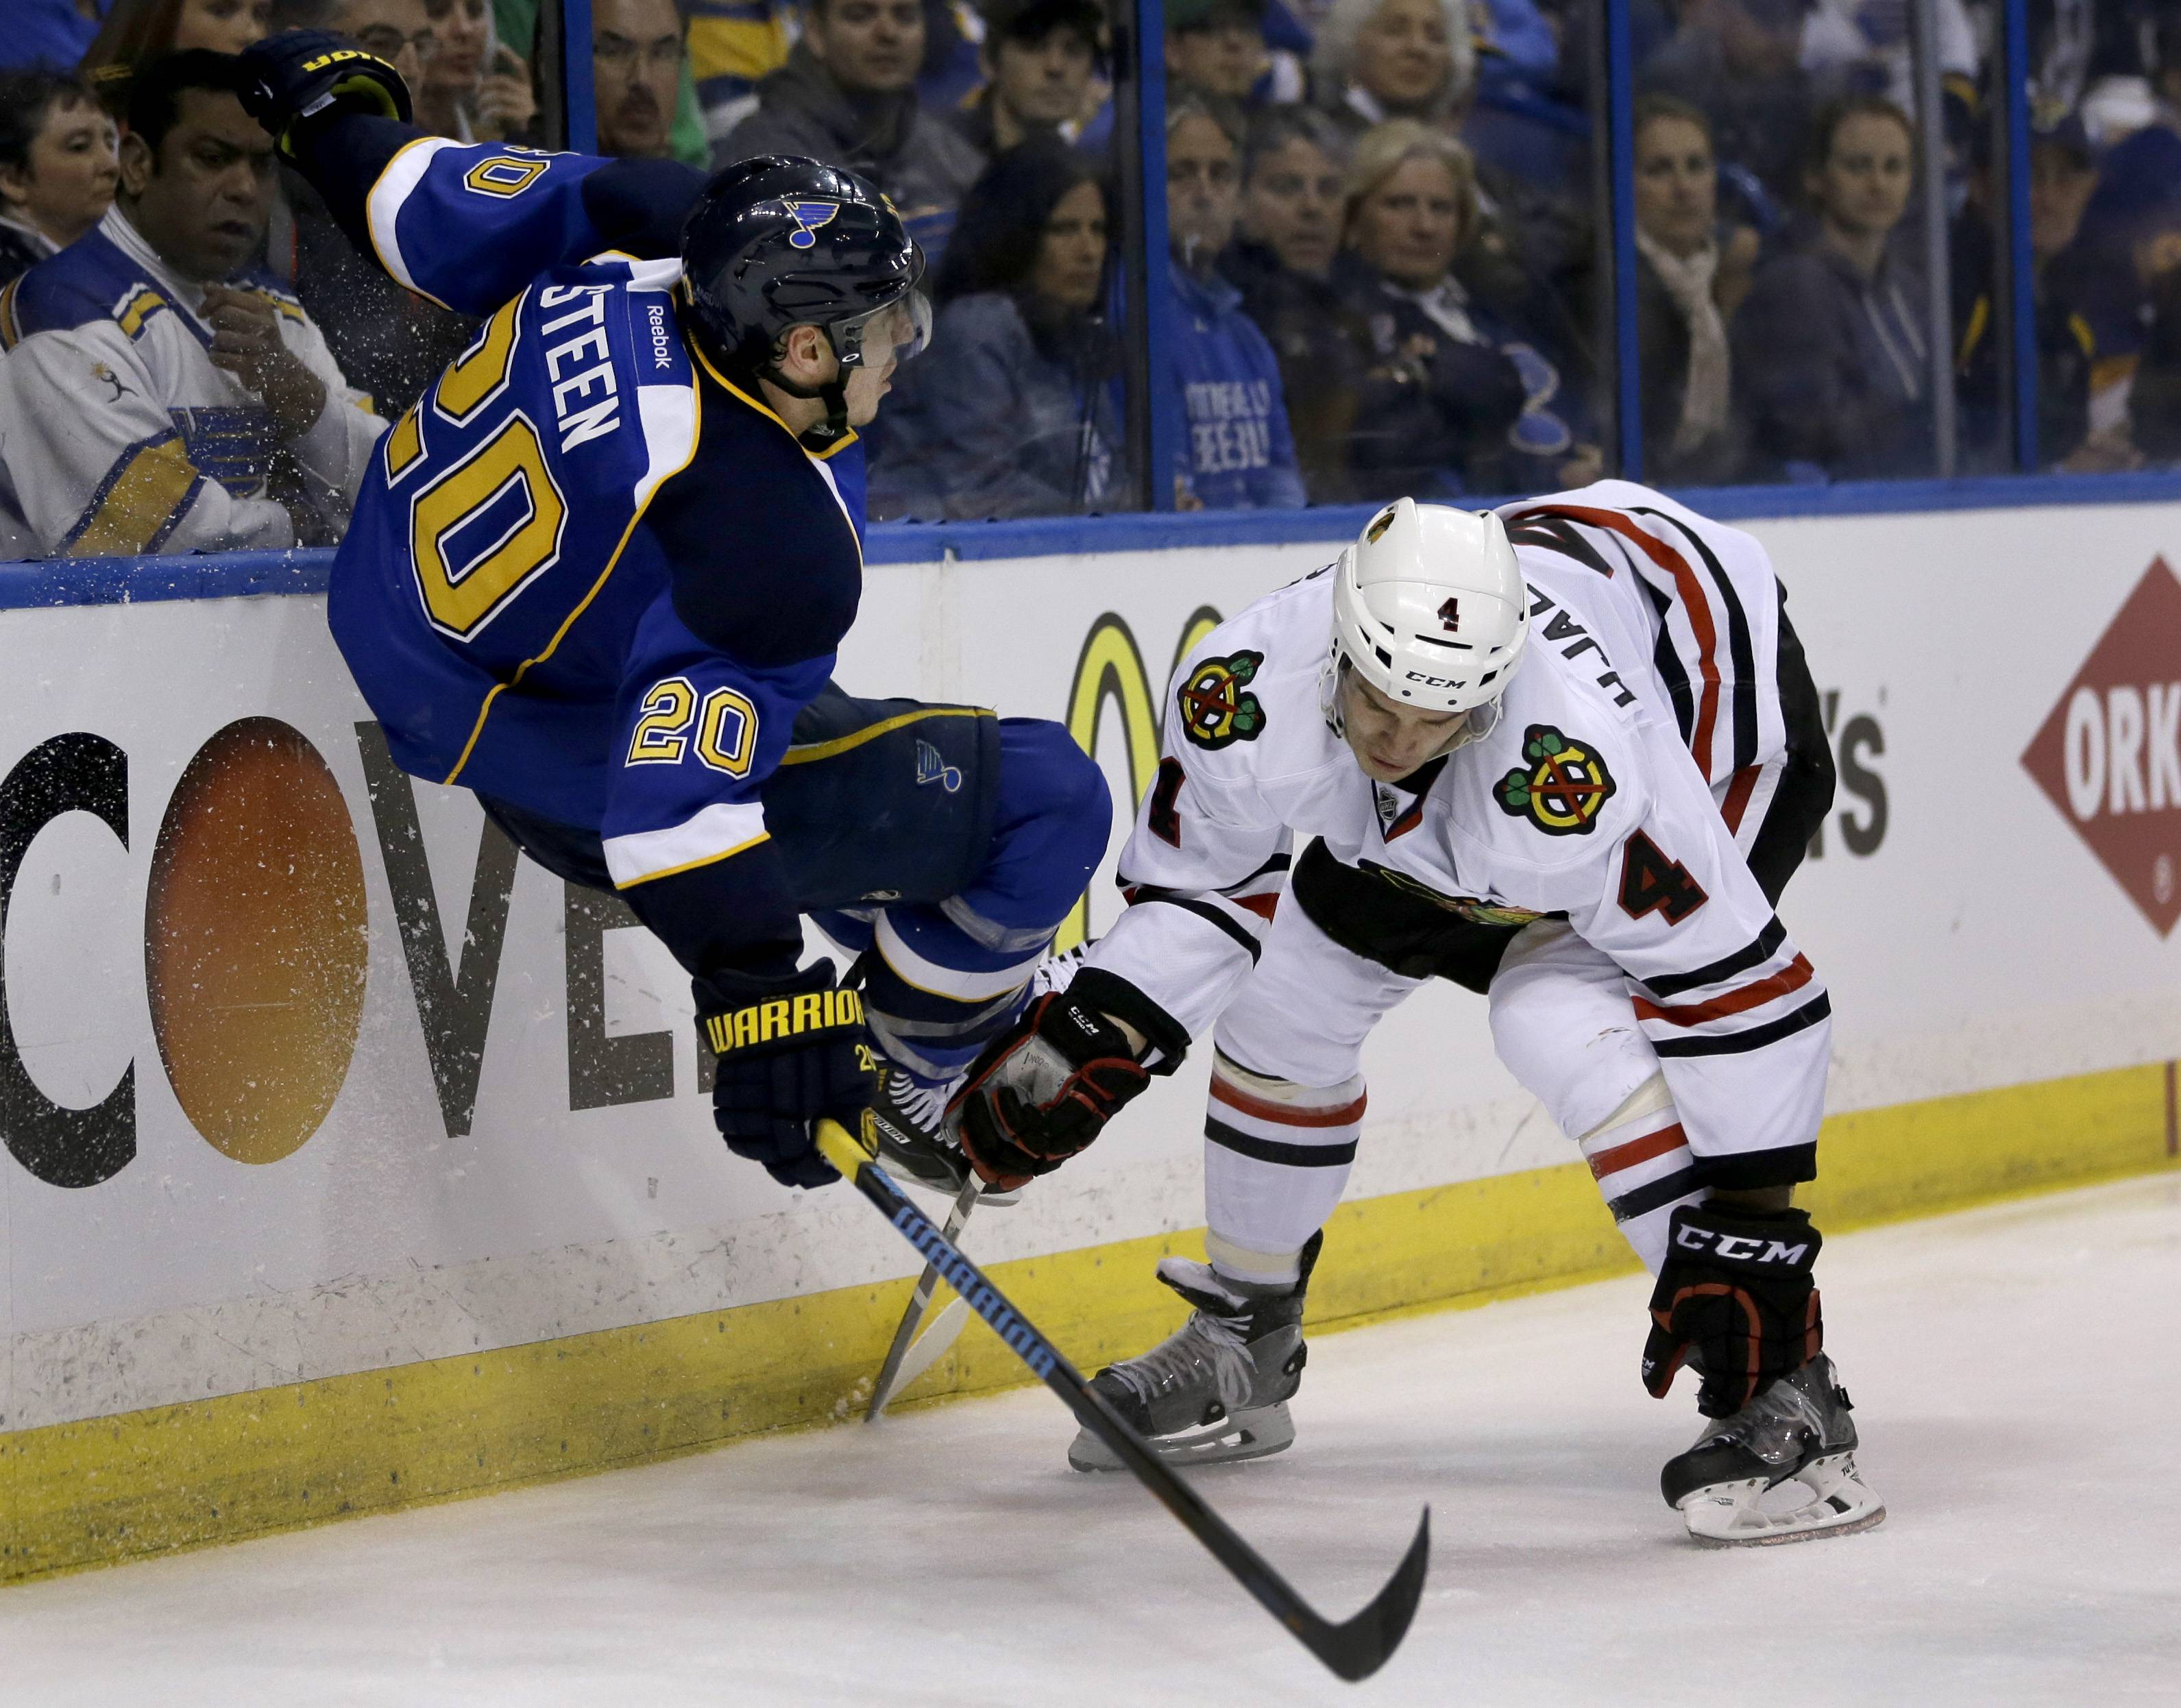 St. Louis Blues' Alexander Steen, left, is checked into the boards by Chicago Blackhawks' Niklas Hjalmarsson during the first overtime.